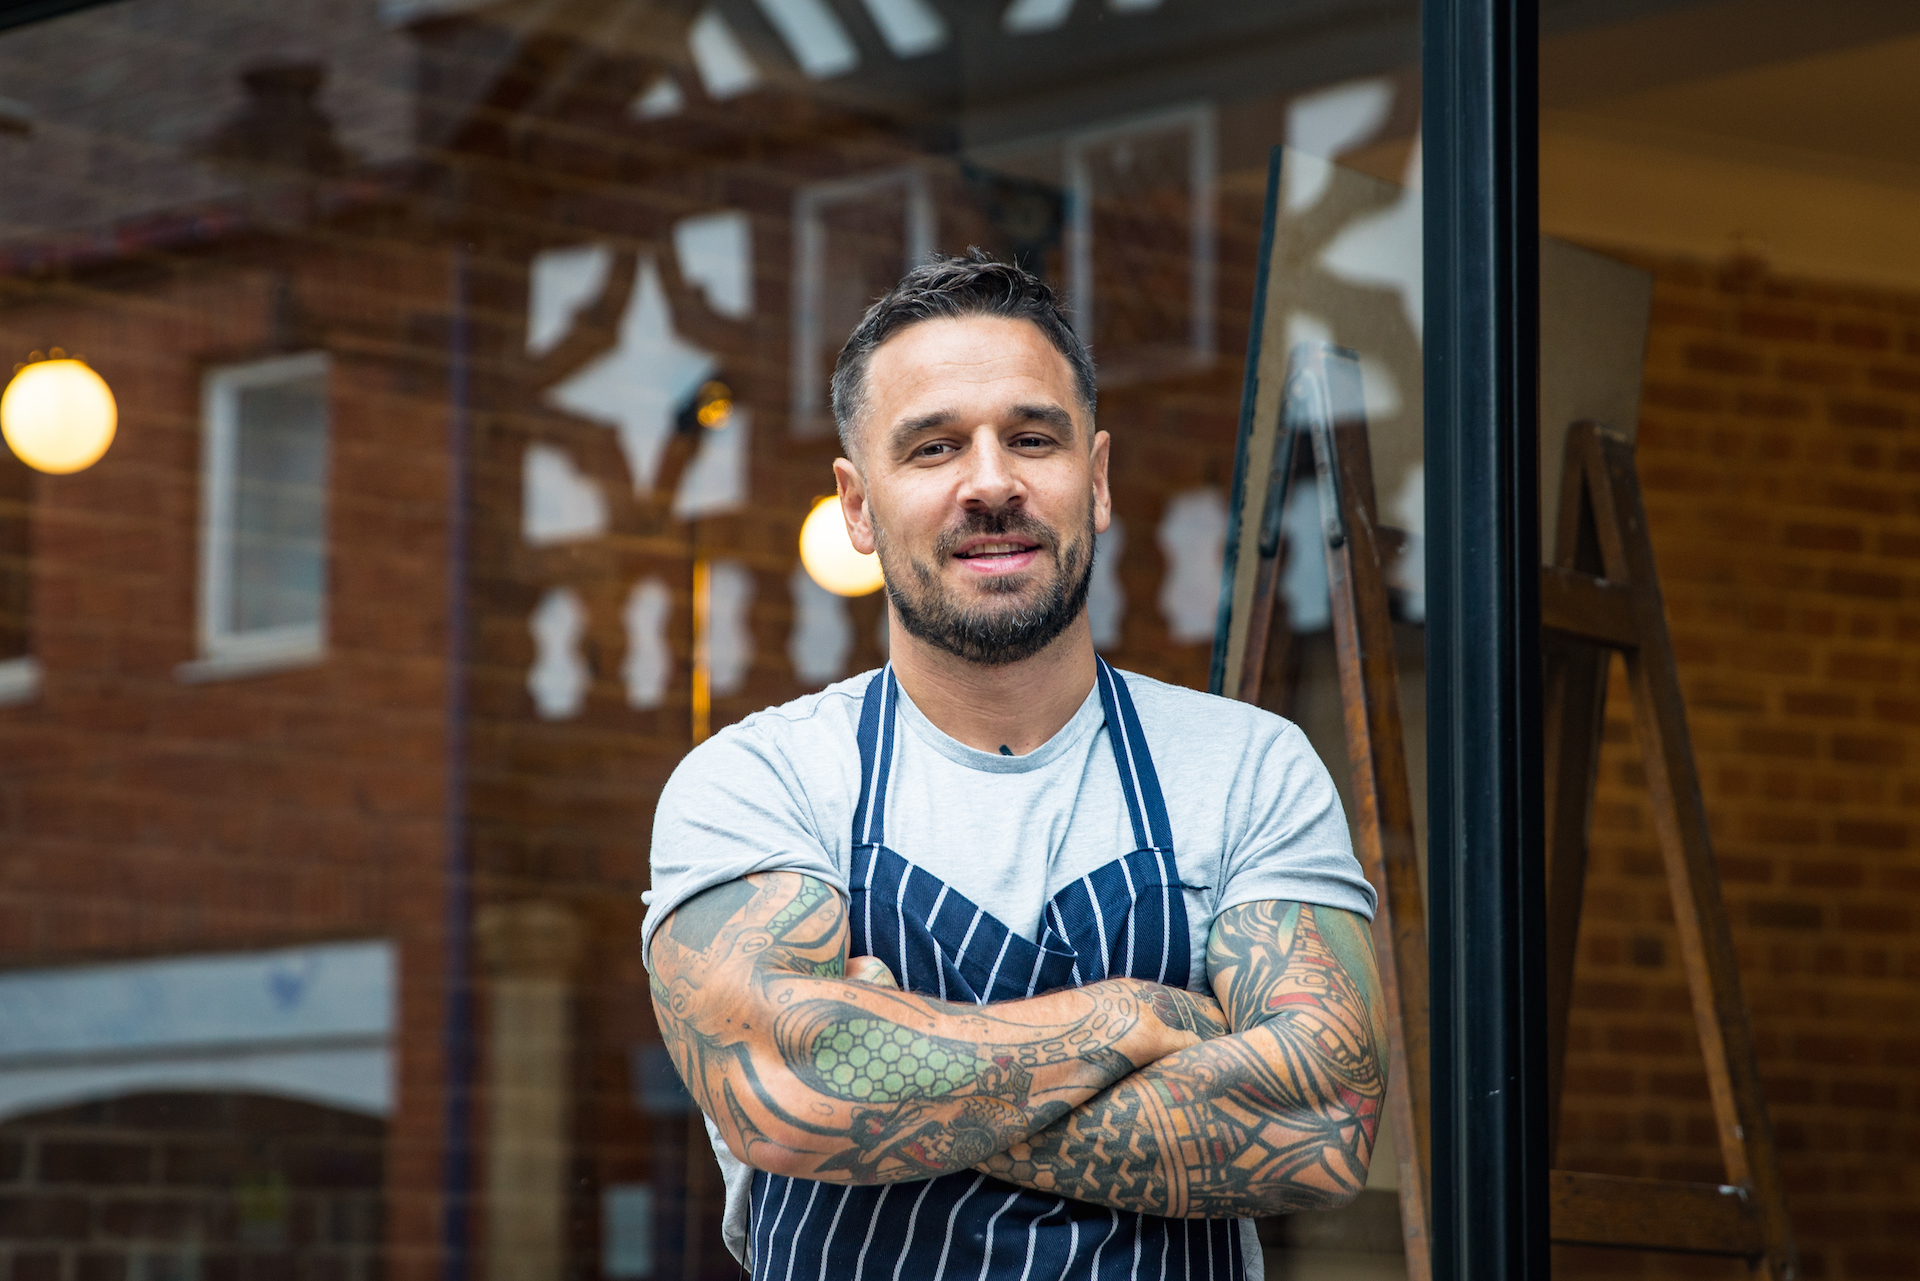 Cheshire chef entrepreneur's restaurants - including Sticky Walnut in Chester - make Good Food Guide